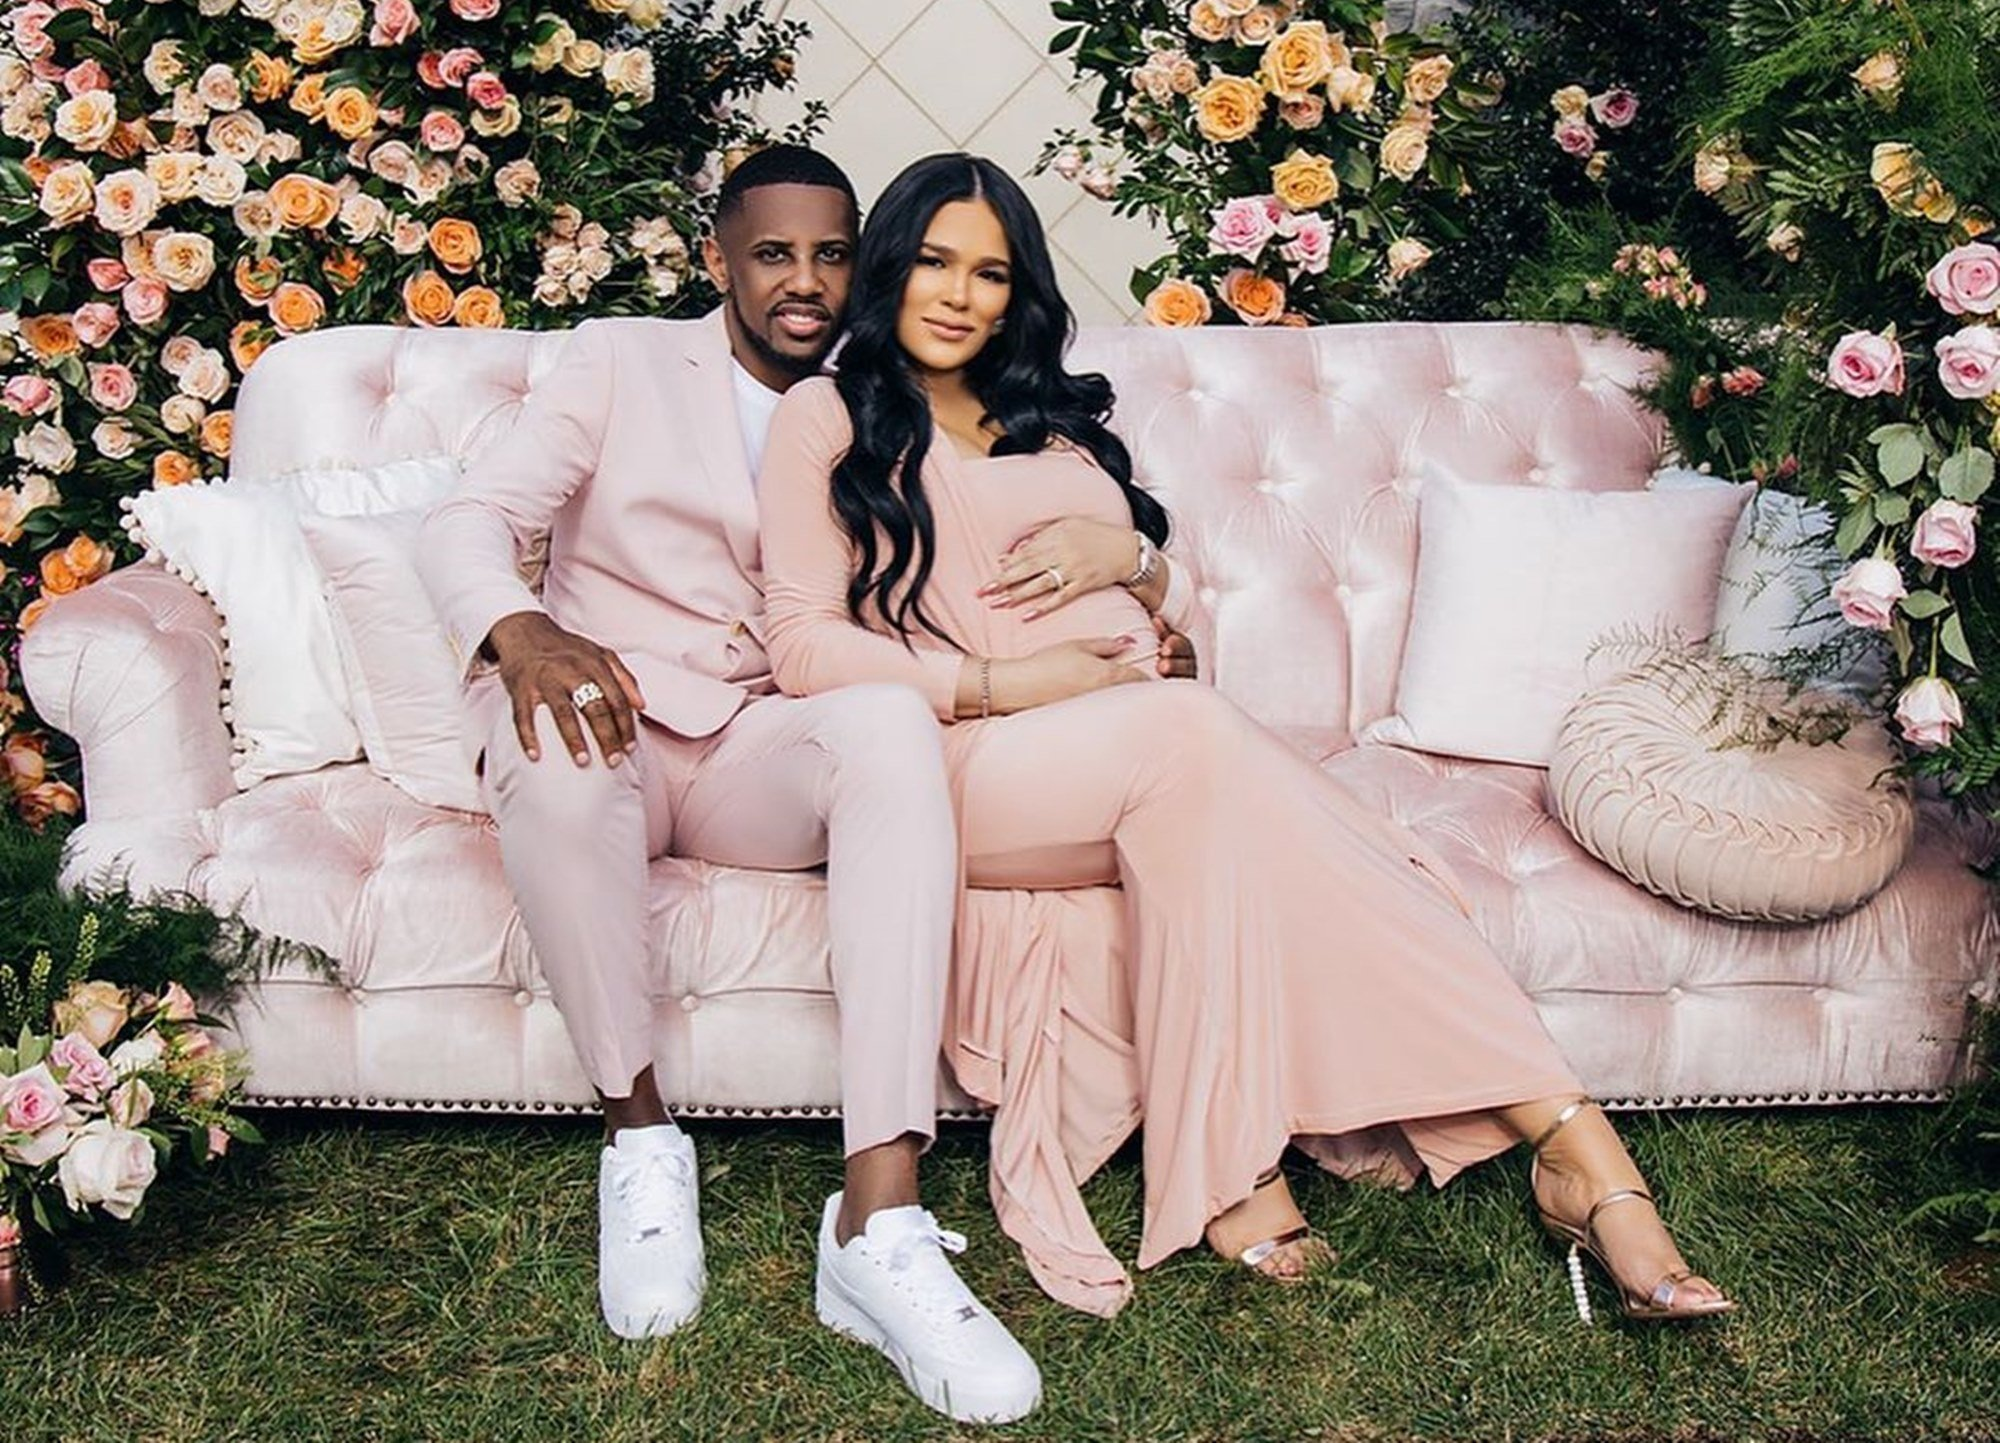 Emily B Reveals New Photo Of Her And Fabolous' Daughter And Her Fashions Are Already Epic